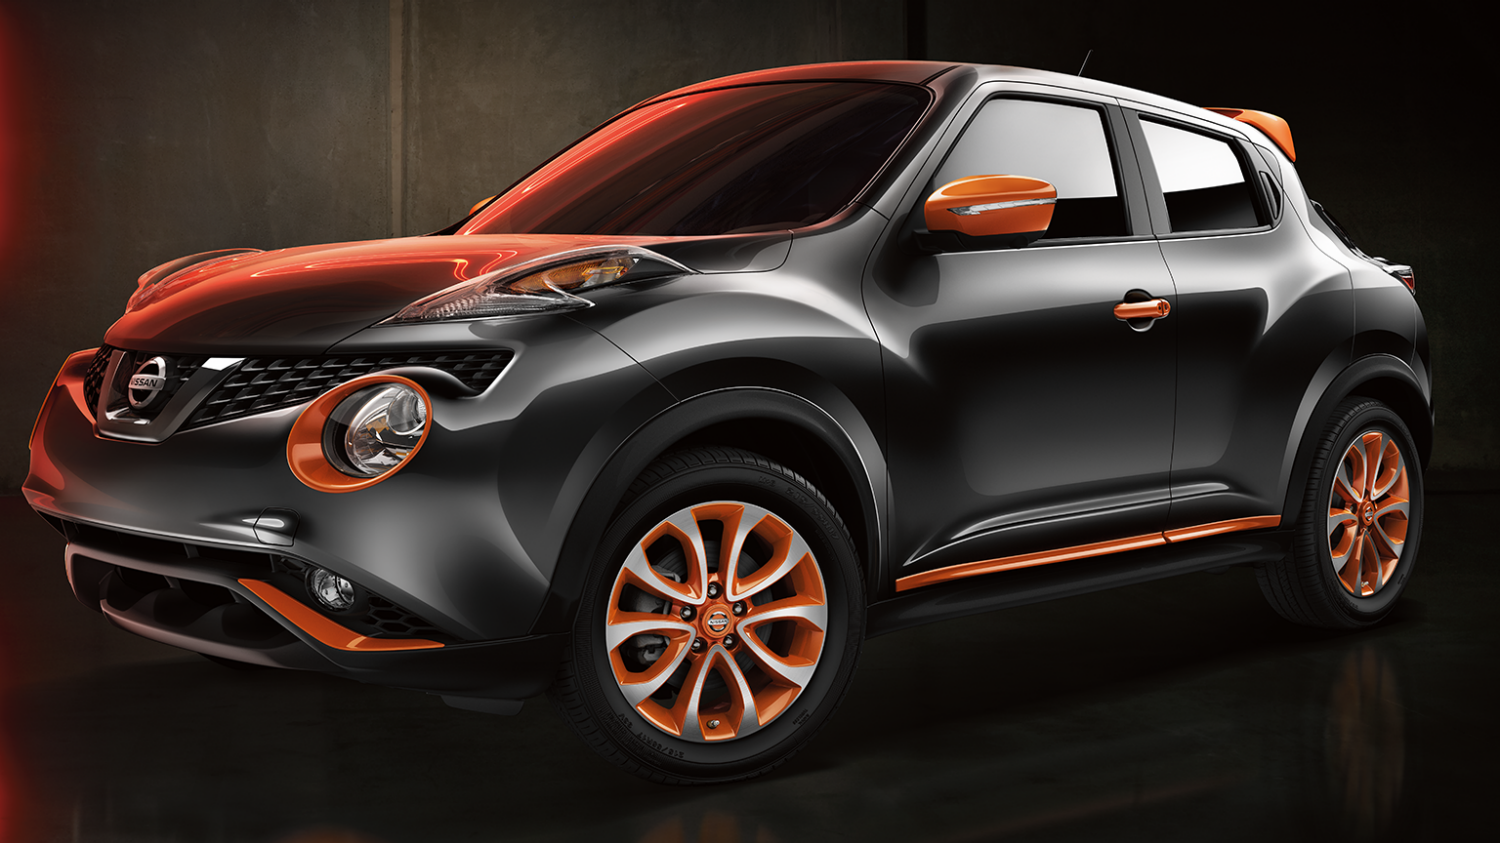 Compact & mini SUV design - Personalise Colour | Nissan Juke